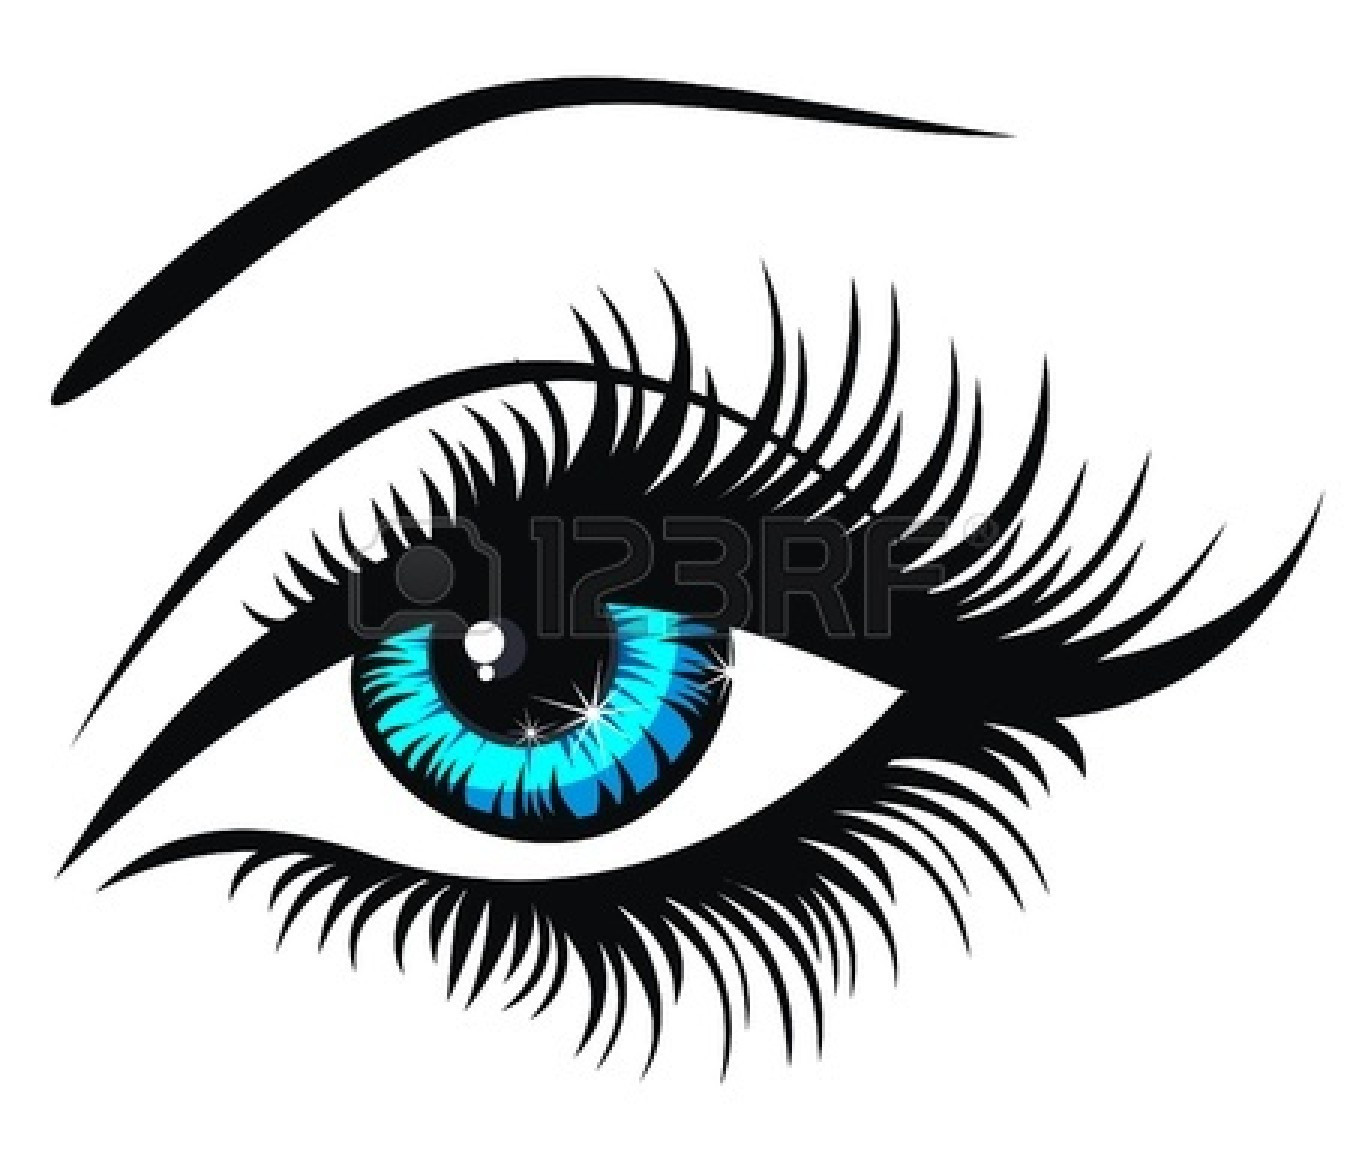 Free clipart of an eye. Download best on clipartmag